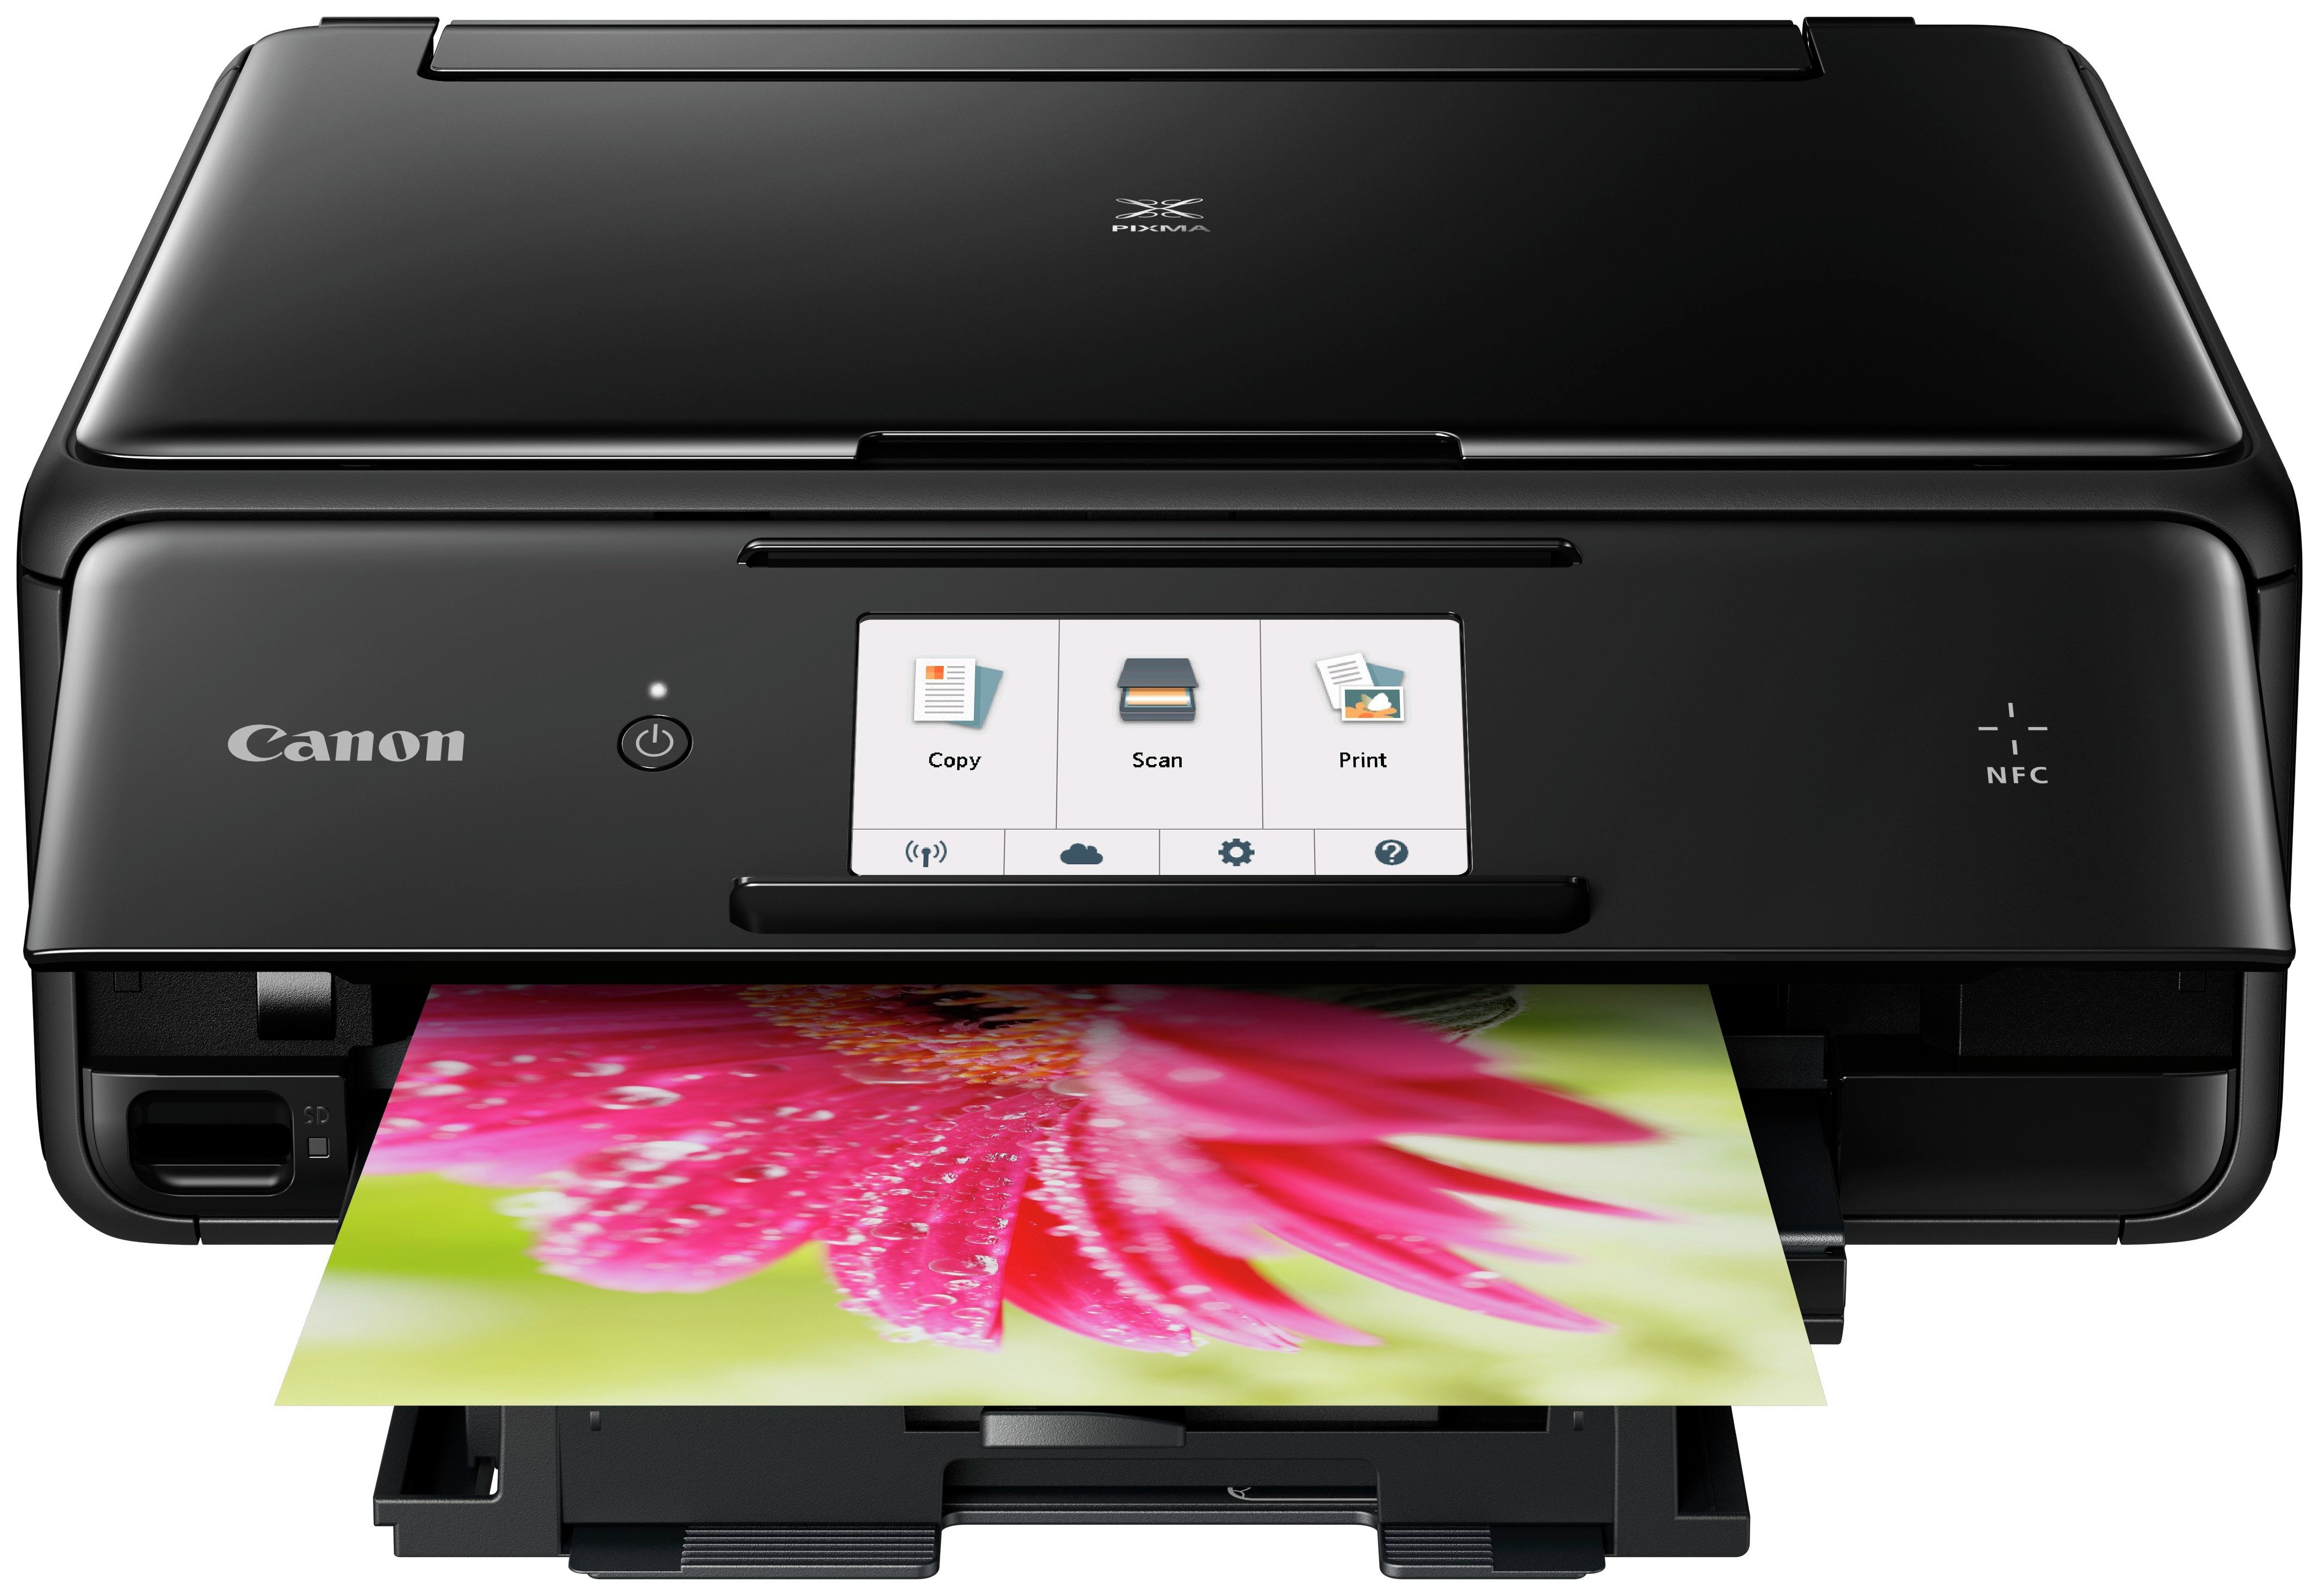 Image of Canon - Pixma TS8050 All in One Wireless Printer